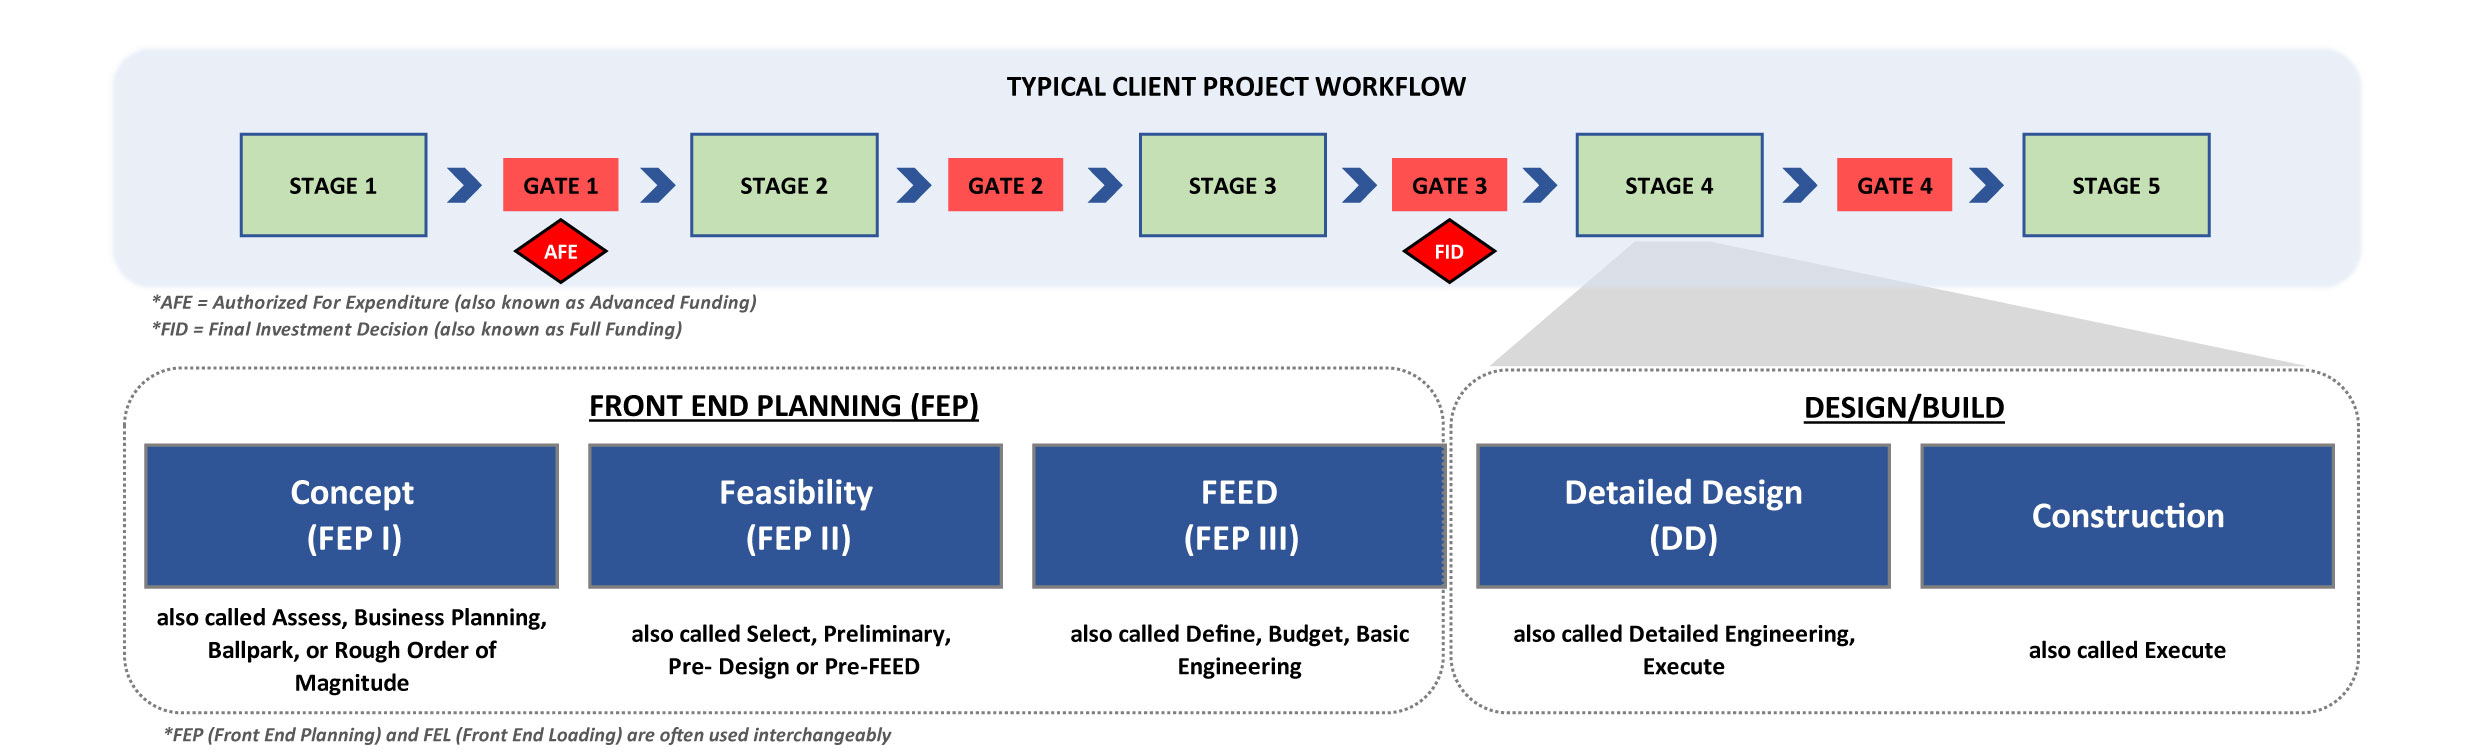 Utilizing a stage gate approach to front-end planning improves the capital project development process.